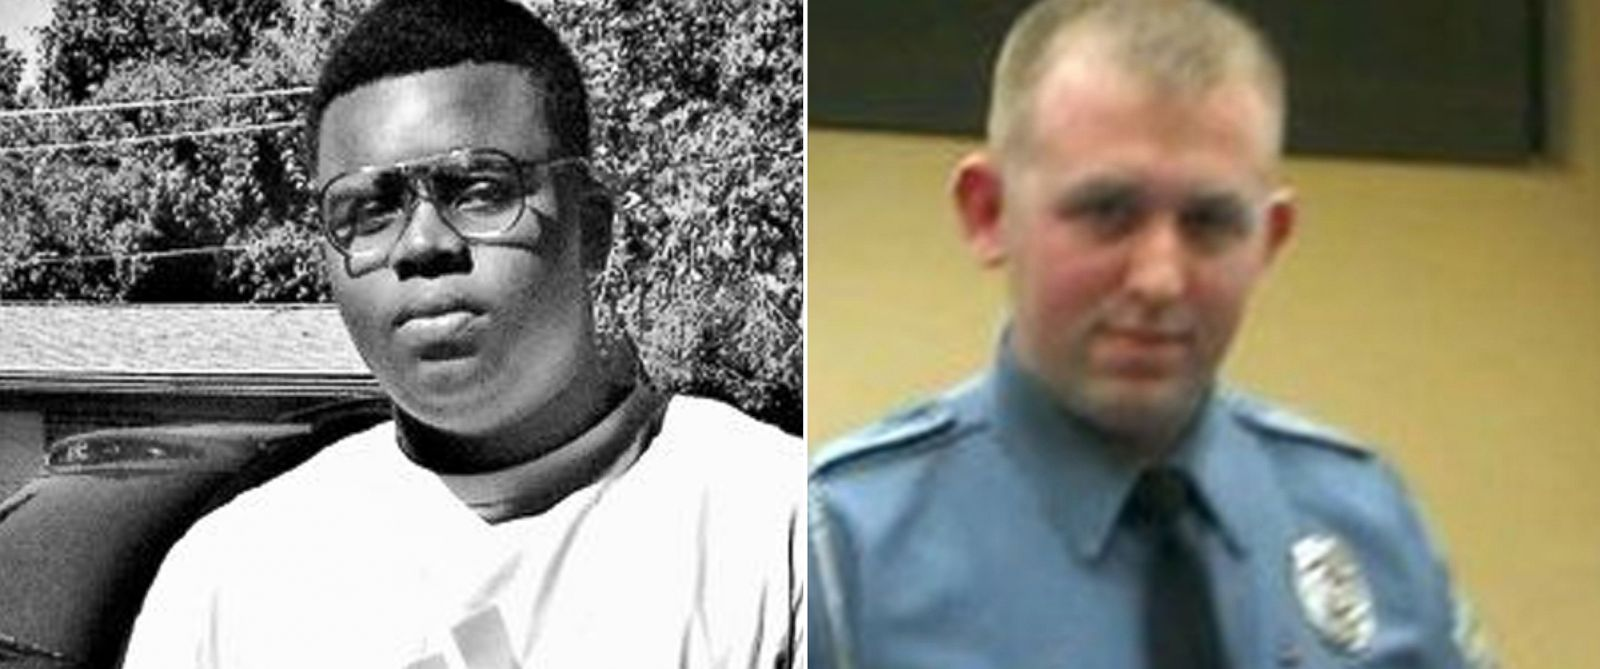 PHOTO: Michael Brown, left, is seen in this photo posted to Facebook. Ferguson police Officer Darren Wilson, shown in this screen shot via Facebook, earned police honor before fatal shooting.